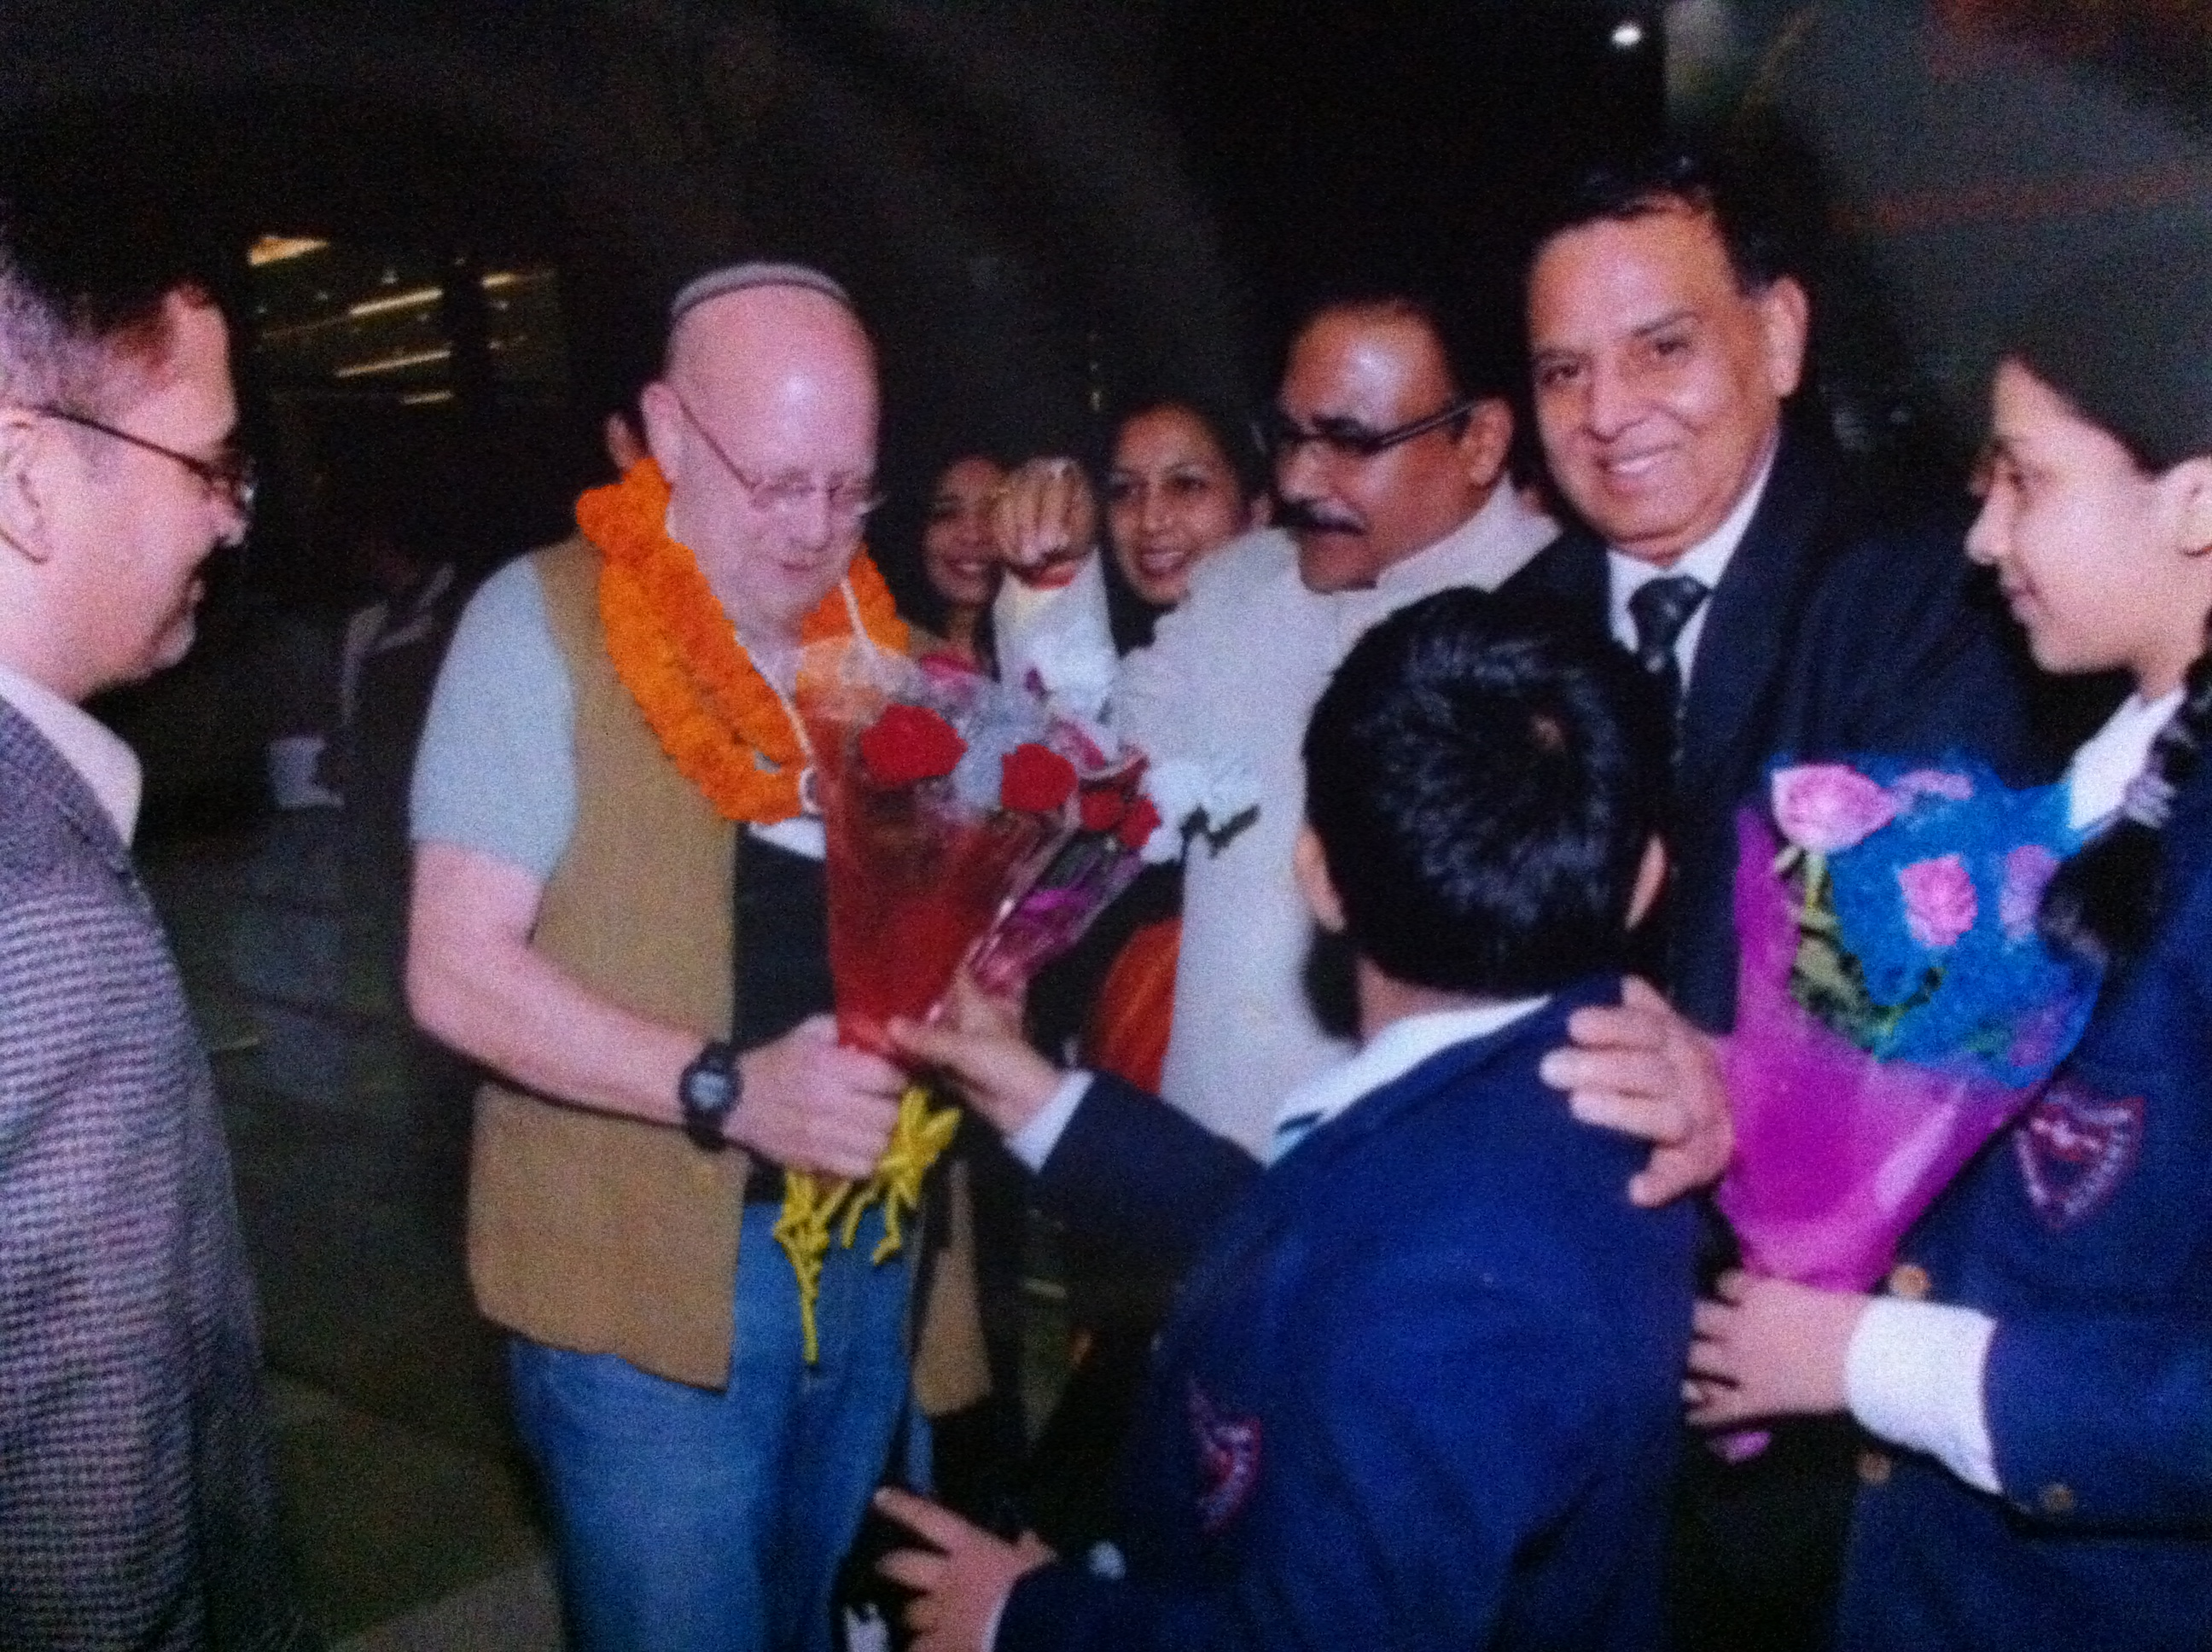 http://www.herenow4u.net/fileadmin/v3media/pics/organisations/Jain_Education_and_Research_Foundation/2010-11_Dr._Nathan_Katz_Visits_India/101122_Dr._Nathan_Katz_338.JPG